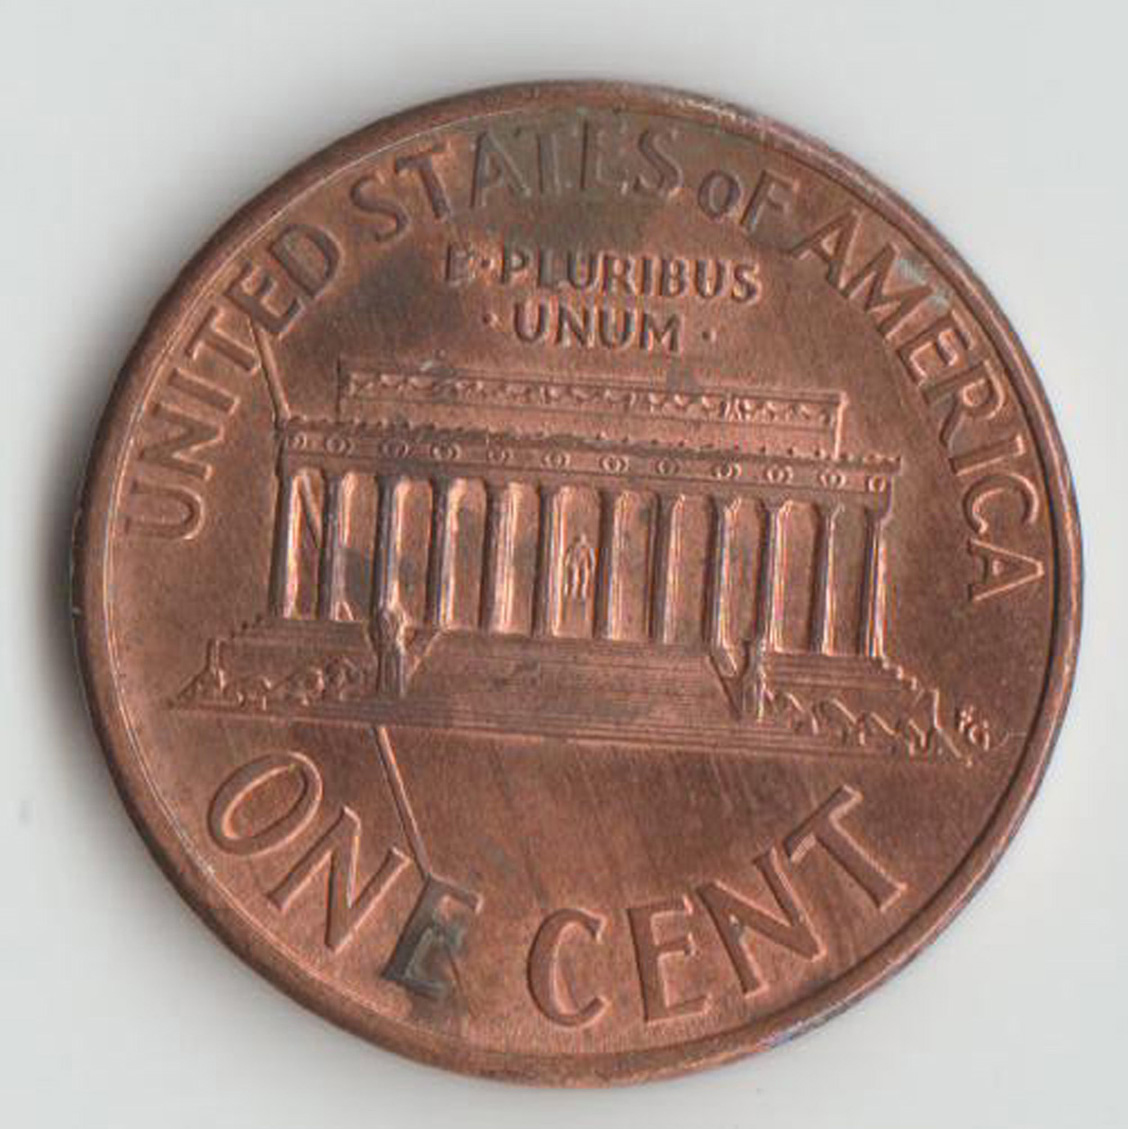 1993 Lincoln Penny Planchet Error? - Coin Community Forum